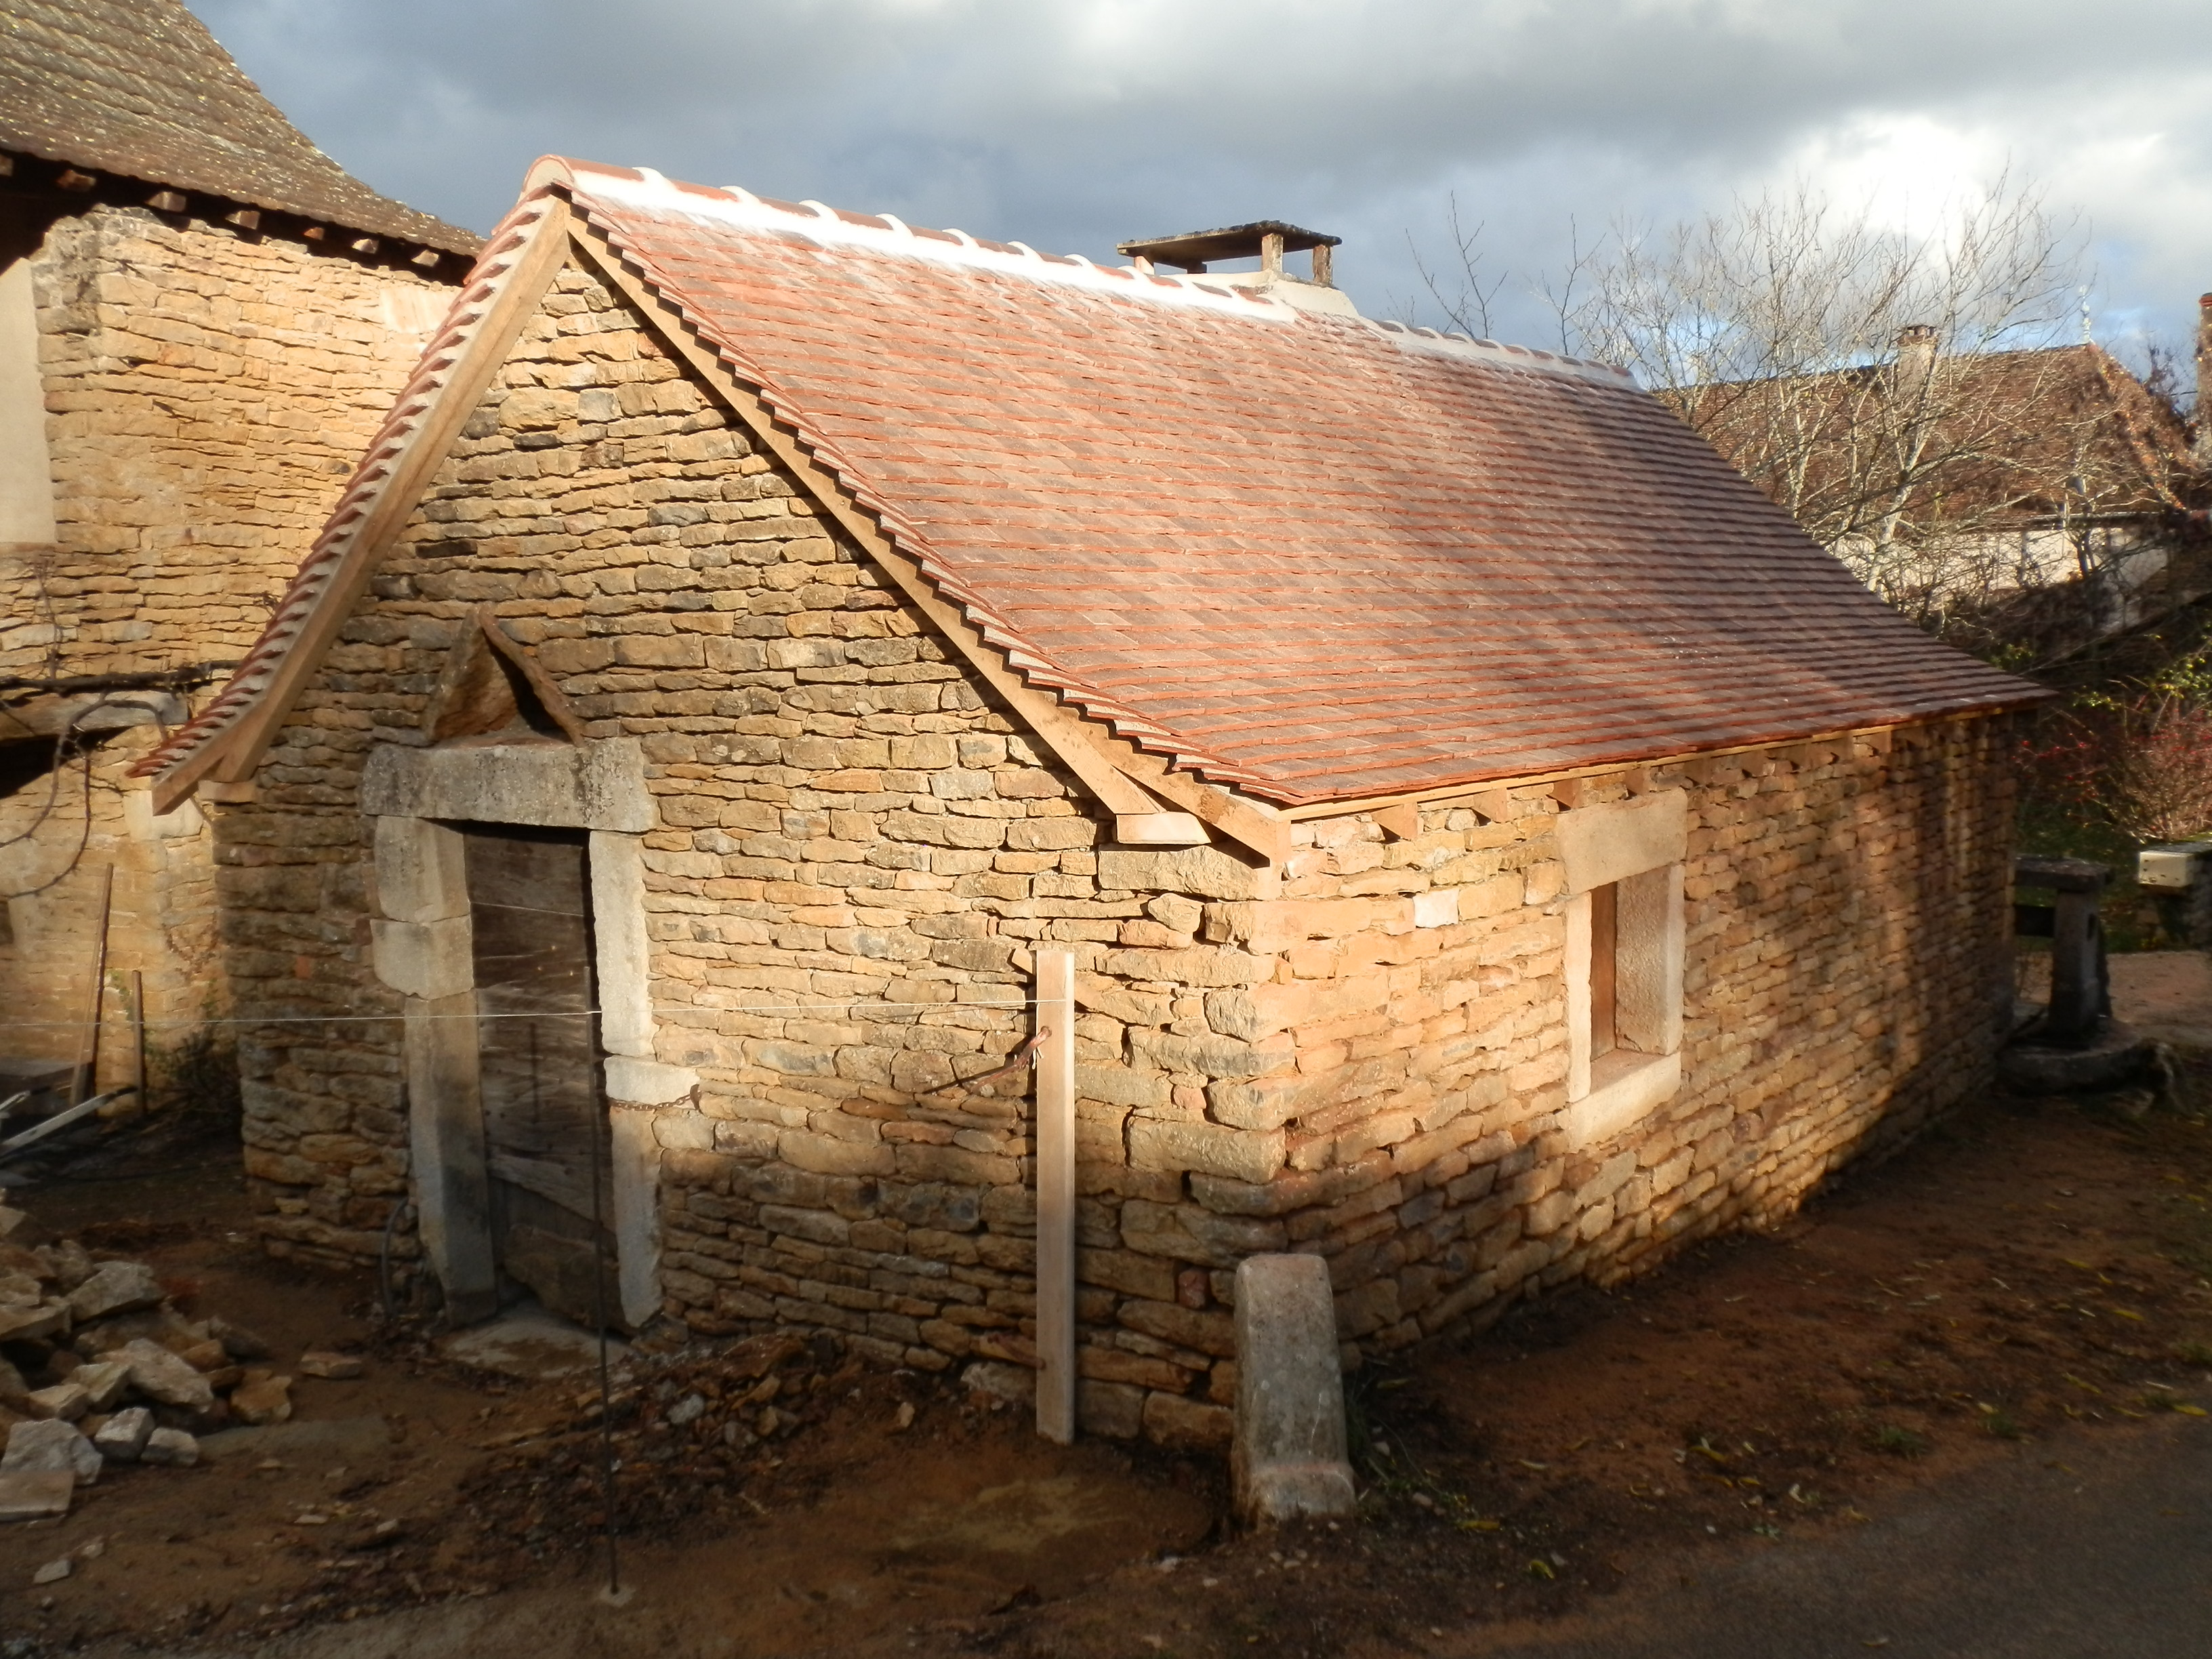 Bread oven building after renovation